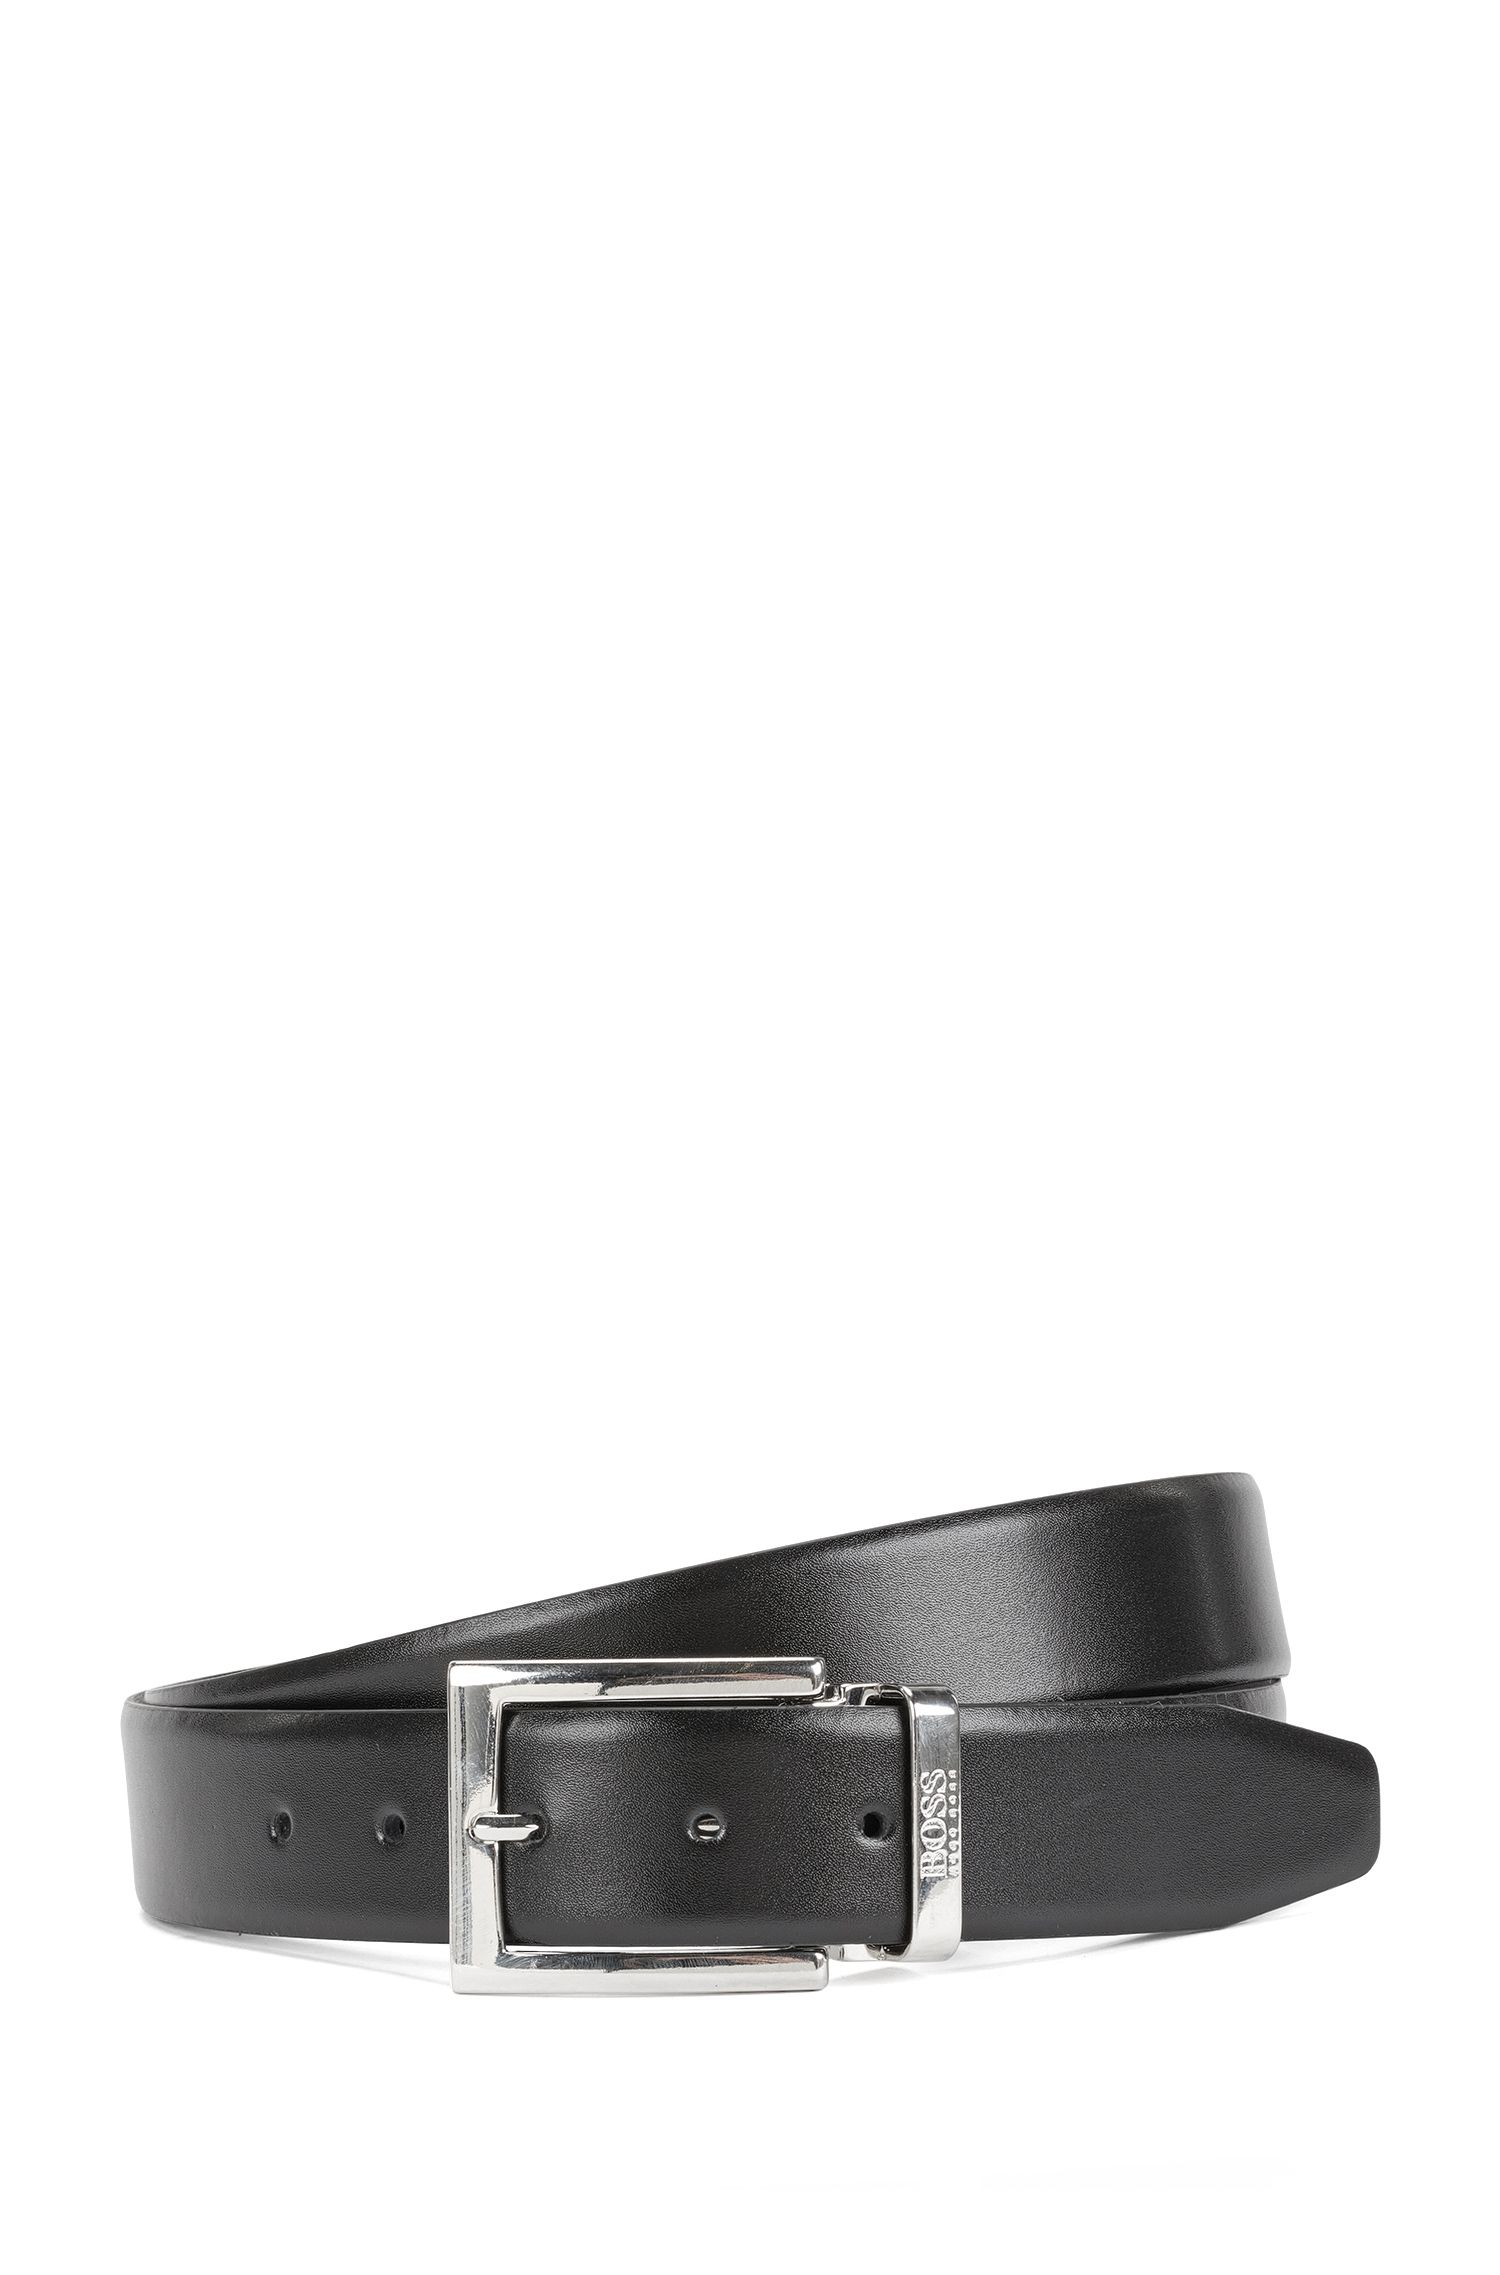 Leather Handcrafted Reversible Belt | Otravely Or35 Ps, Black